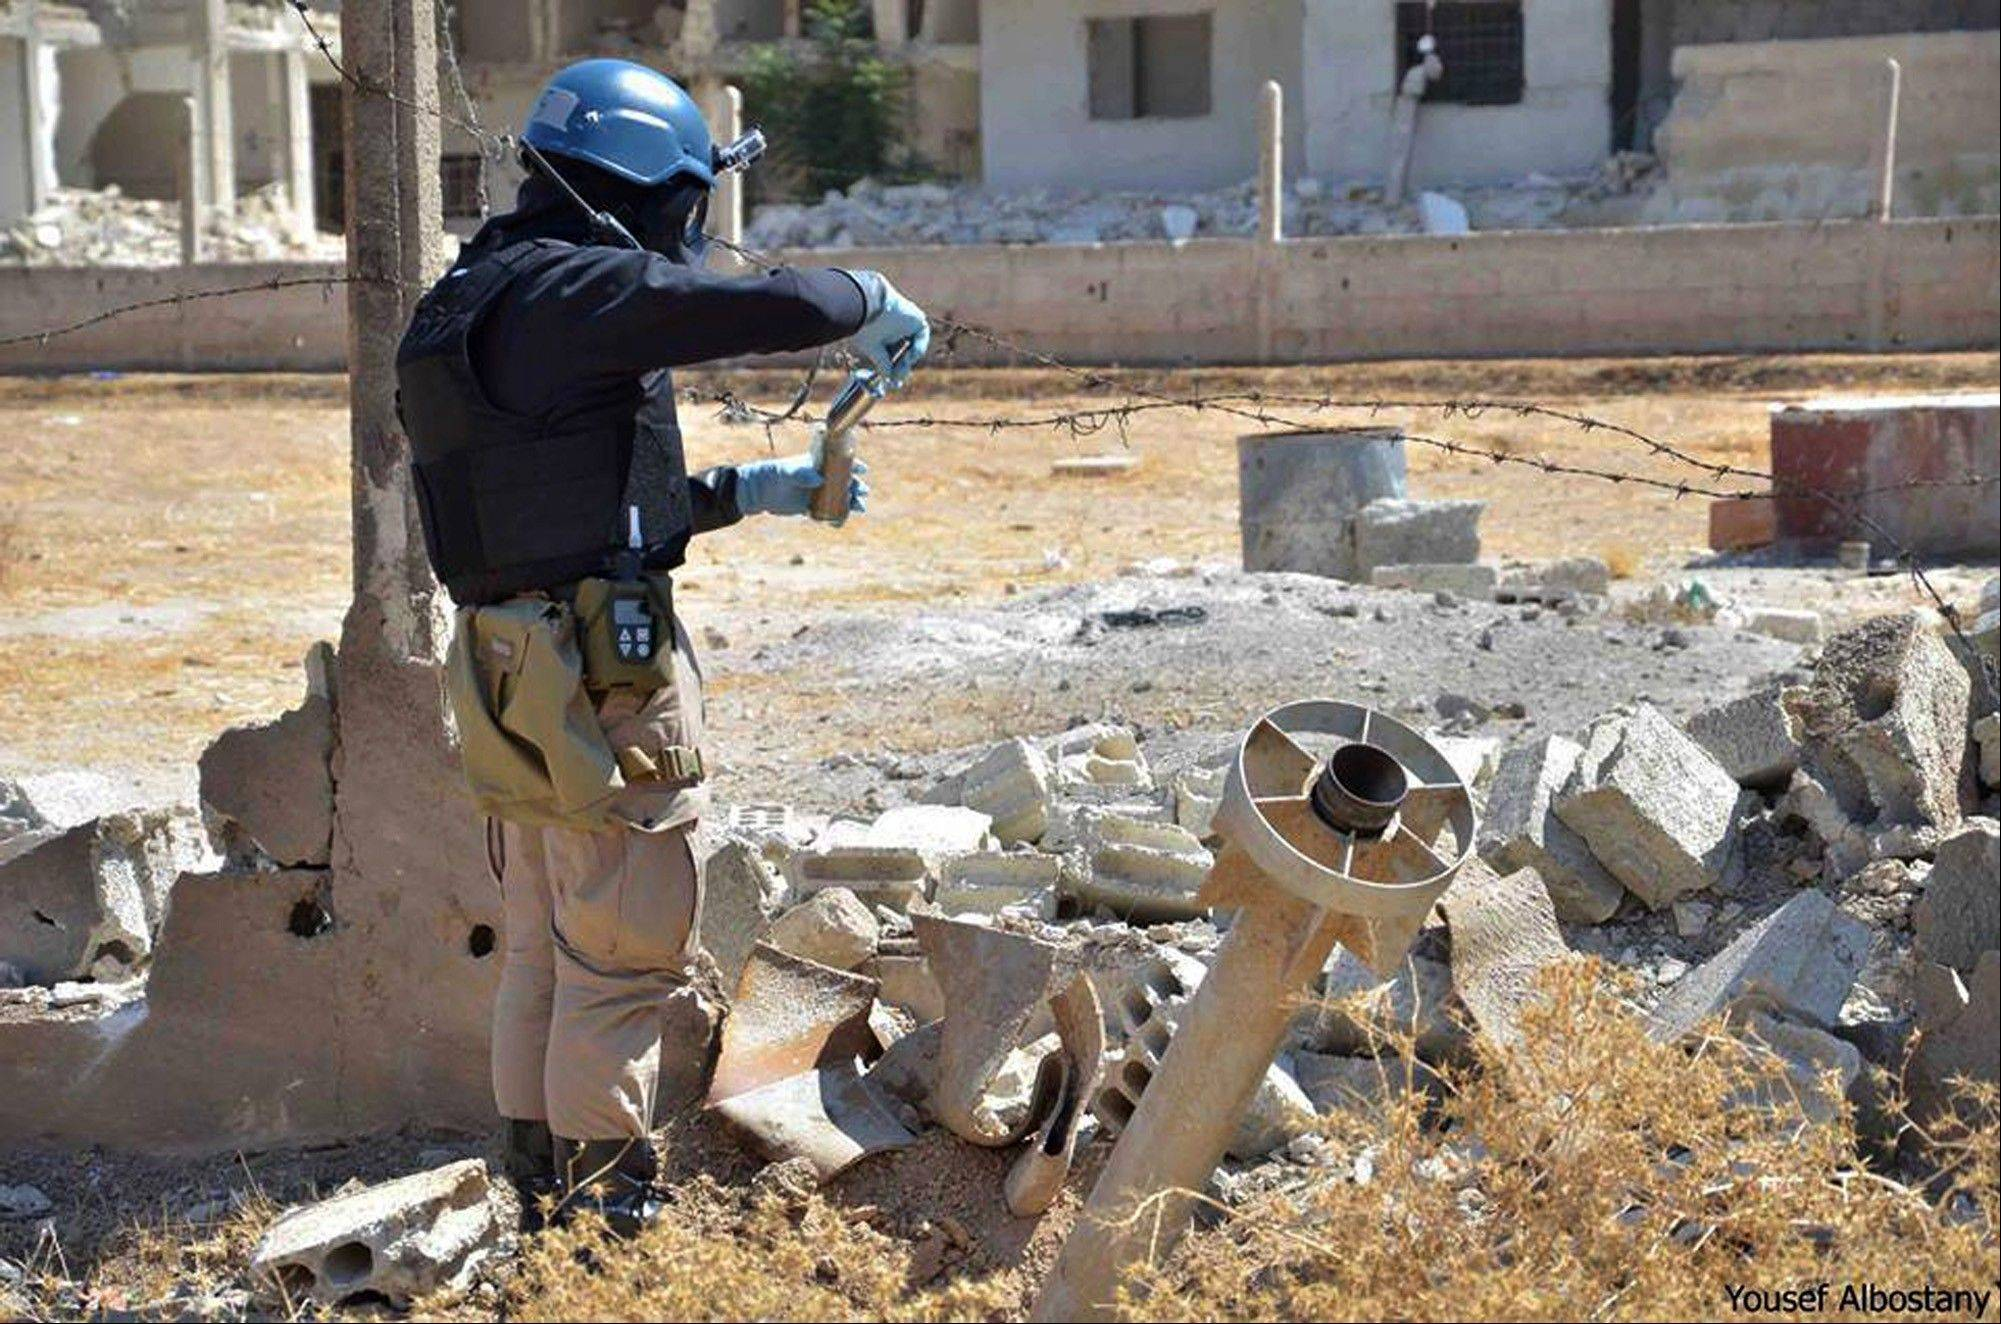 This image provided by the United Media Office of Arbeen shows a member of UN investigation team taking samples of sands near a part of a missile that could be one of the chemical rockets used in last week�s suspected poison gas attack on Syrian civilians.